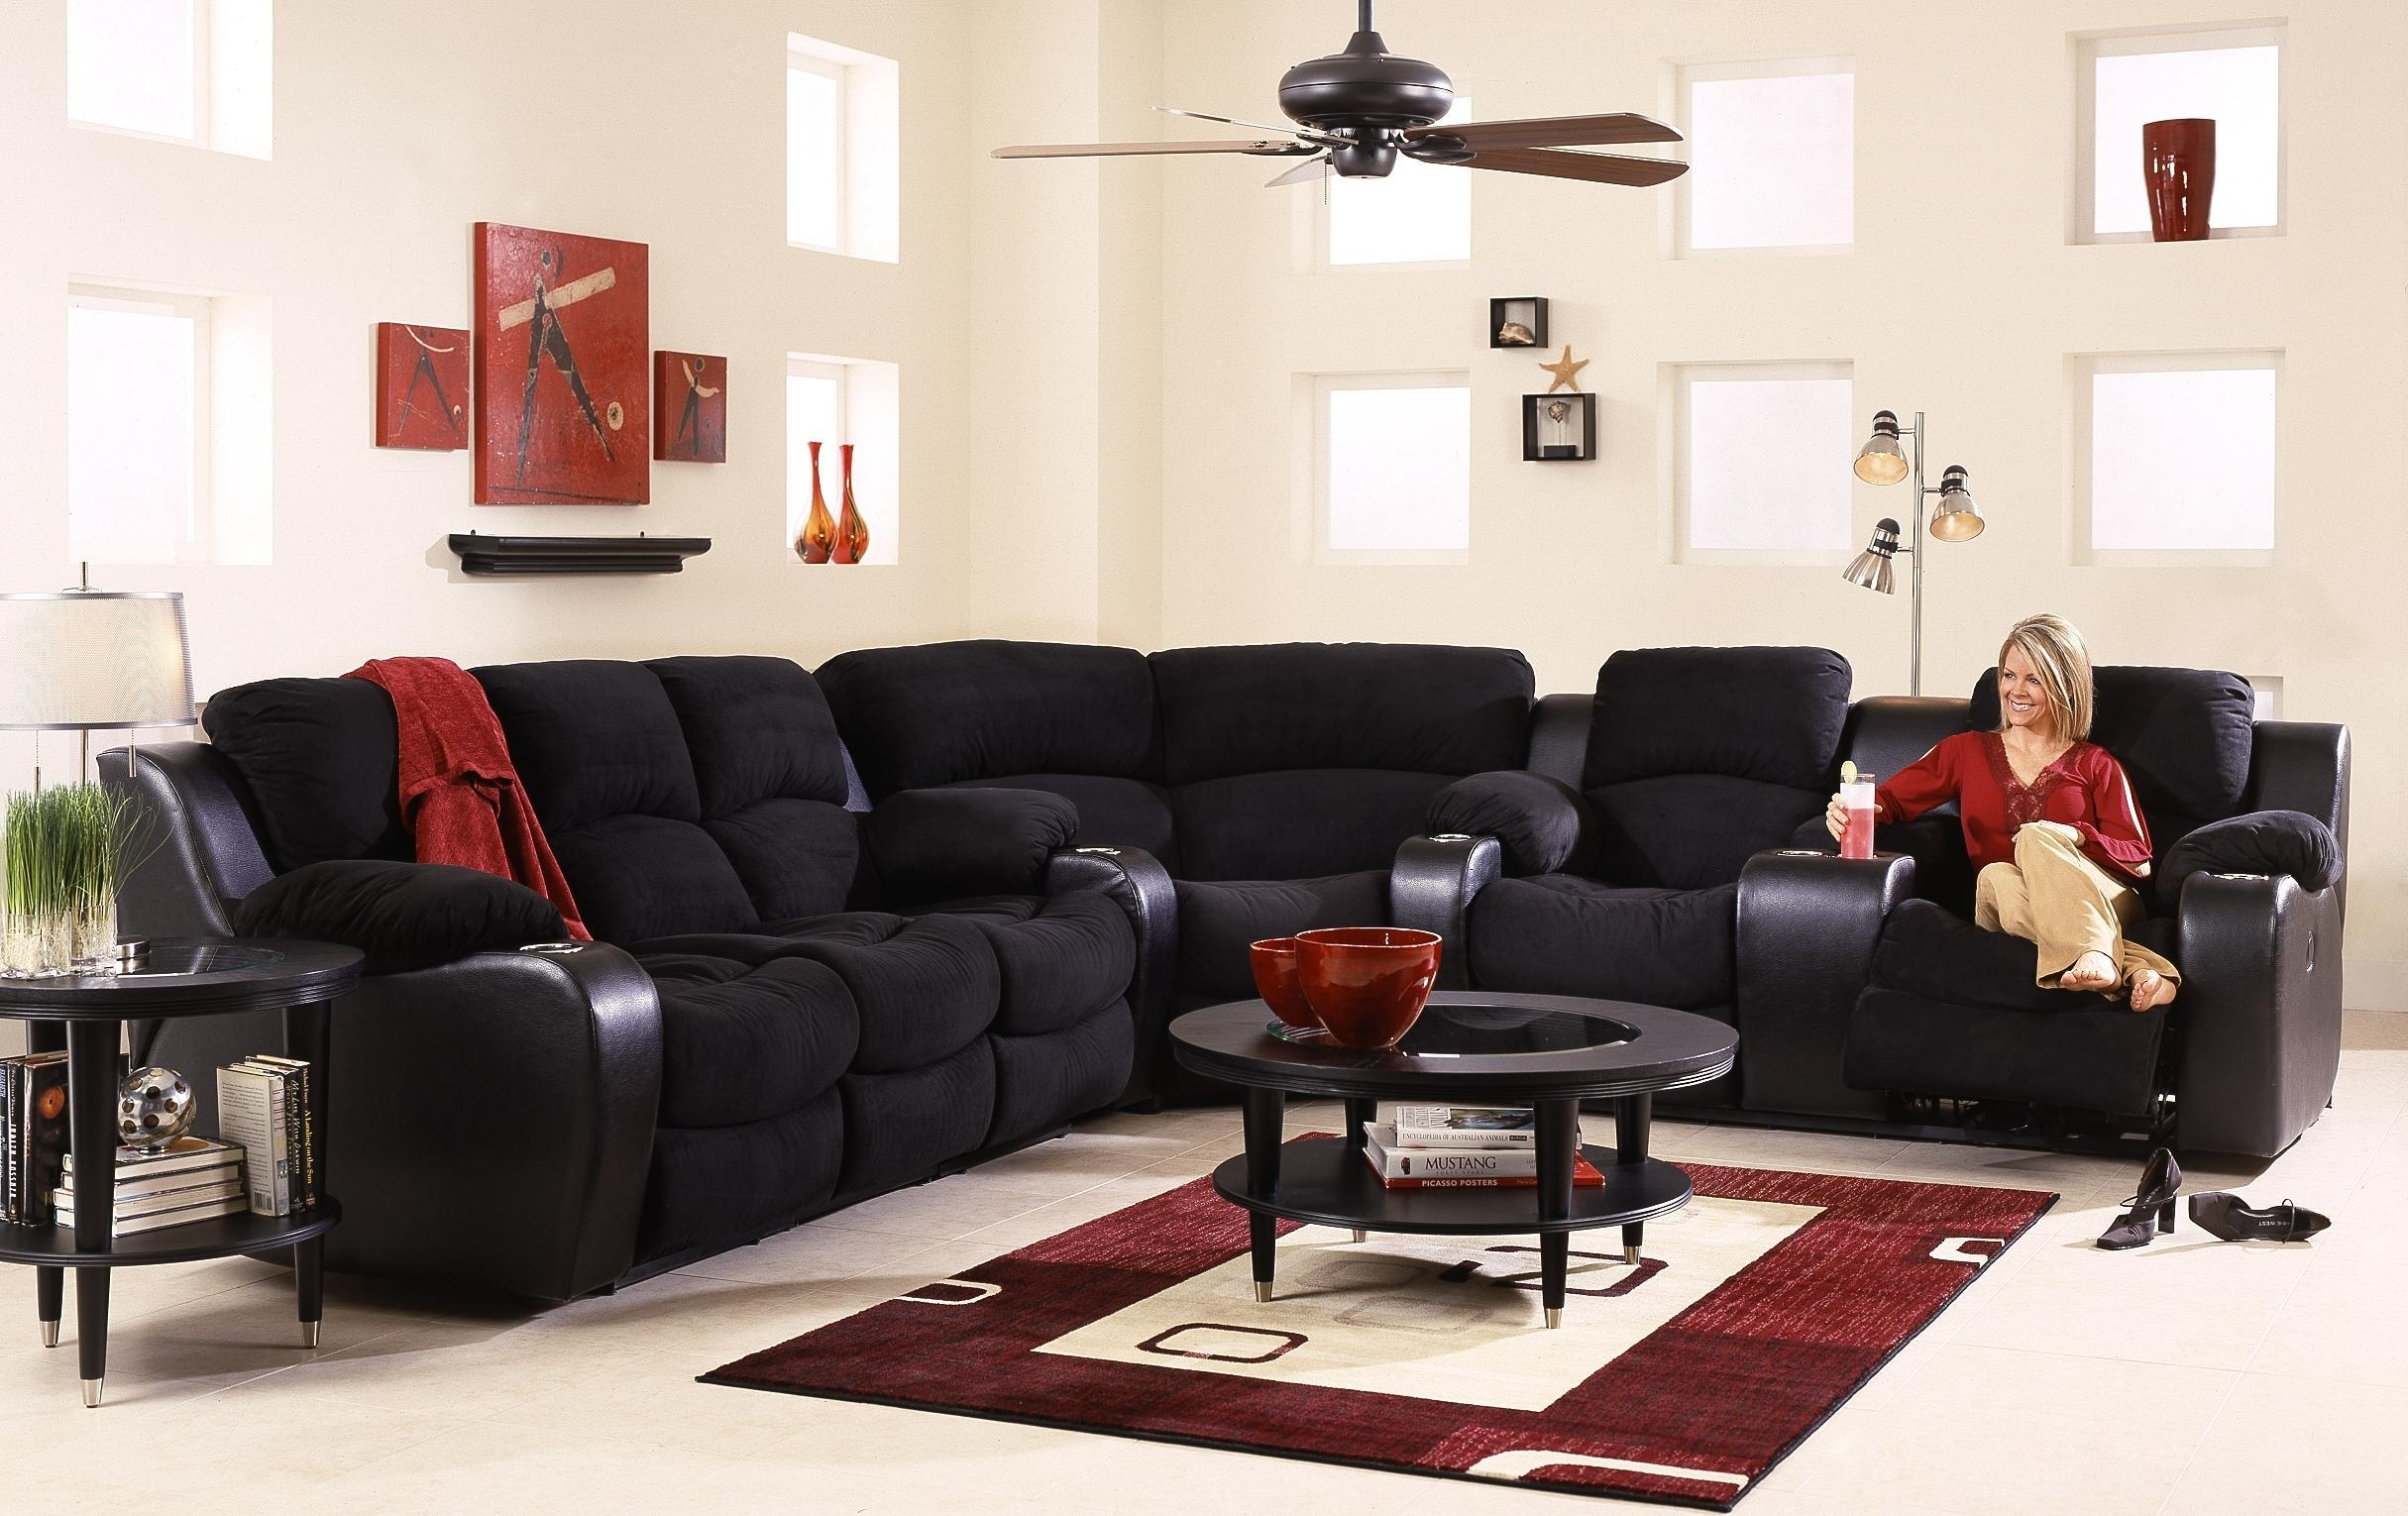 Awesome Sectional Sofas With Cup Holders Unique – Tatsuyoru Inside Grand Furniture Sectional Sofas (Image 1 of 10)